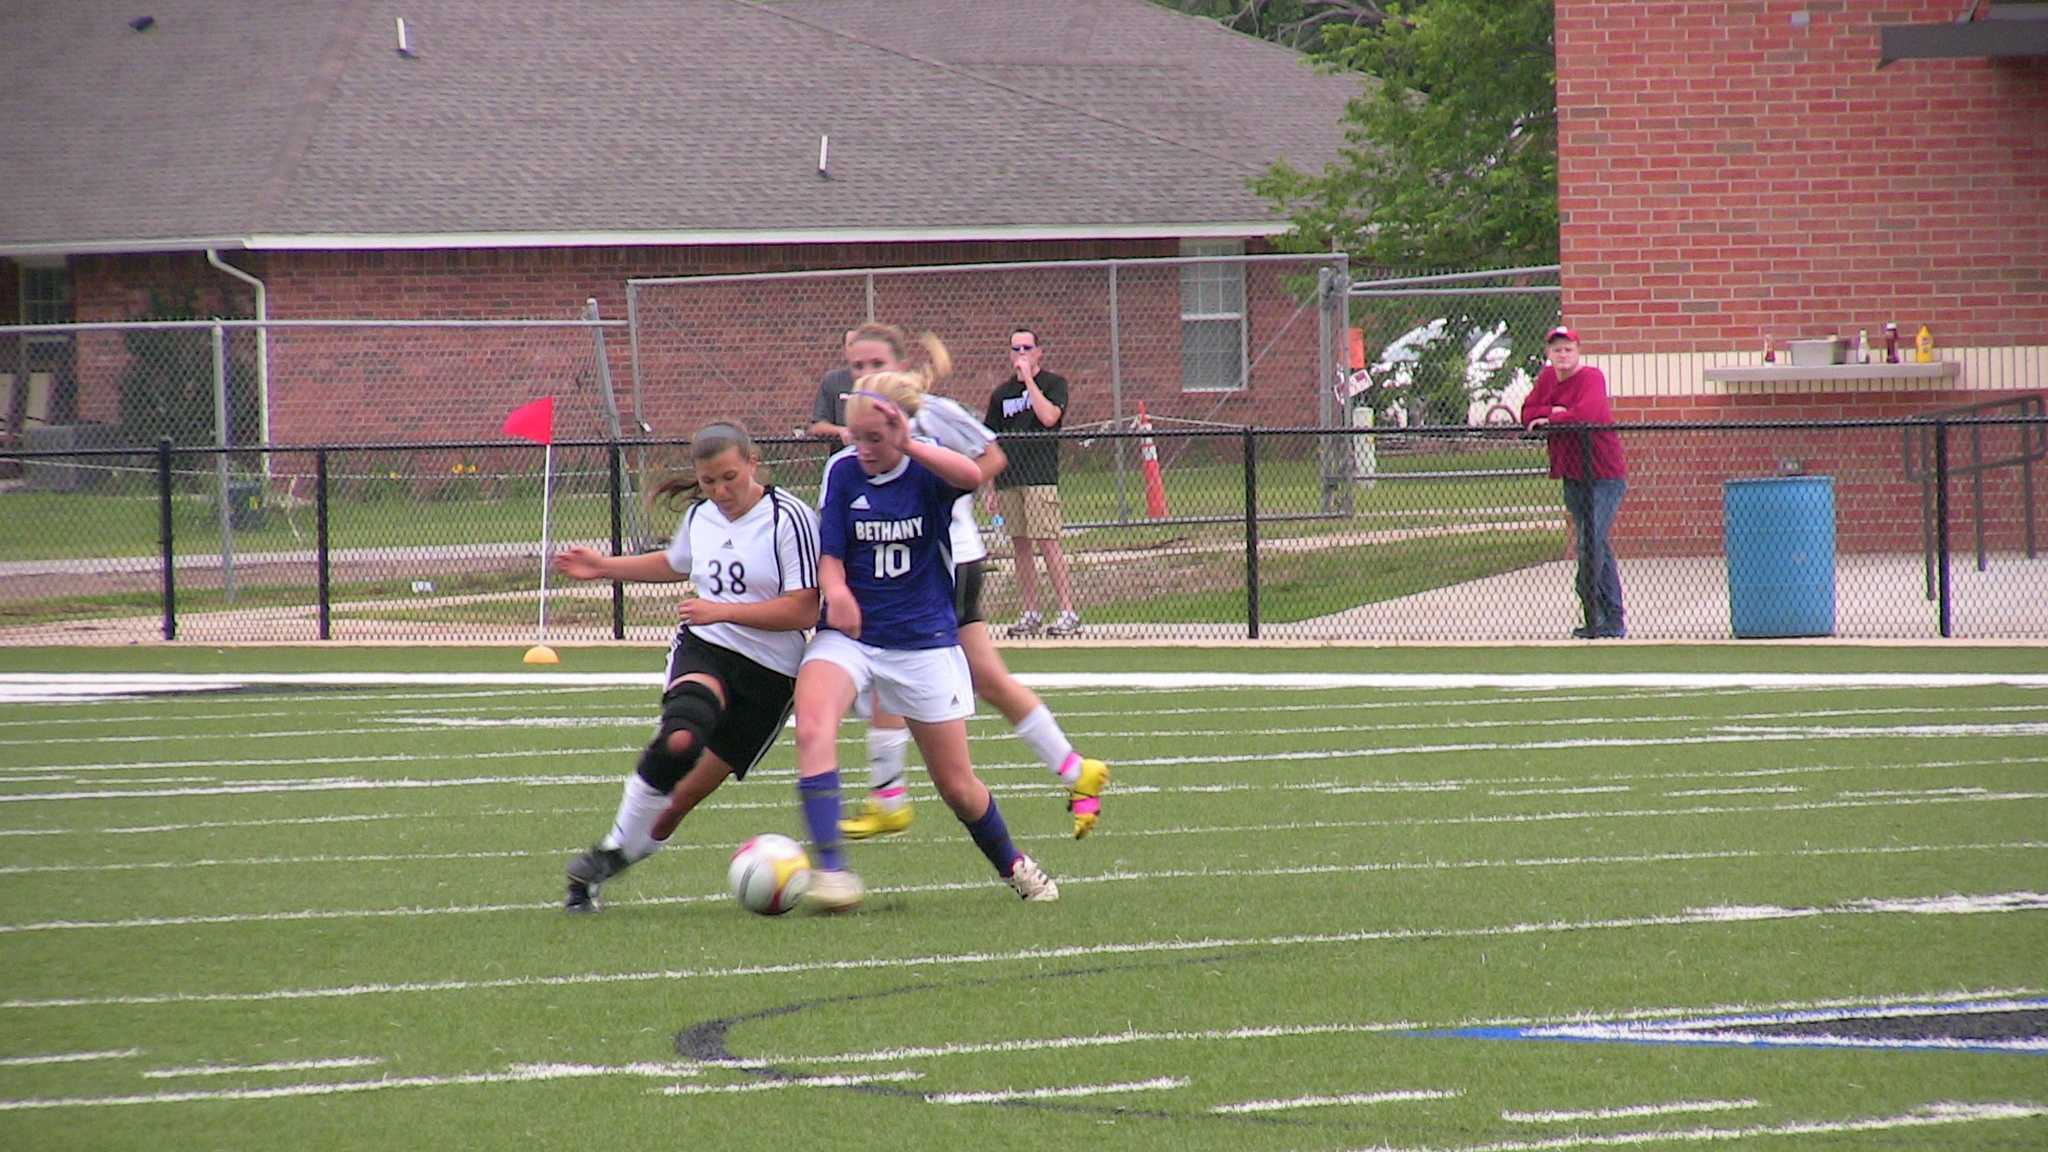 The Bethany Bronco's battle the Verdigris Cardinals in the 4A girls soccer championship. Here two players battle for the ball.